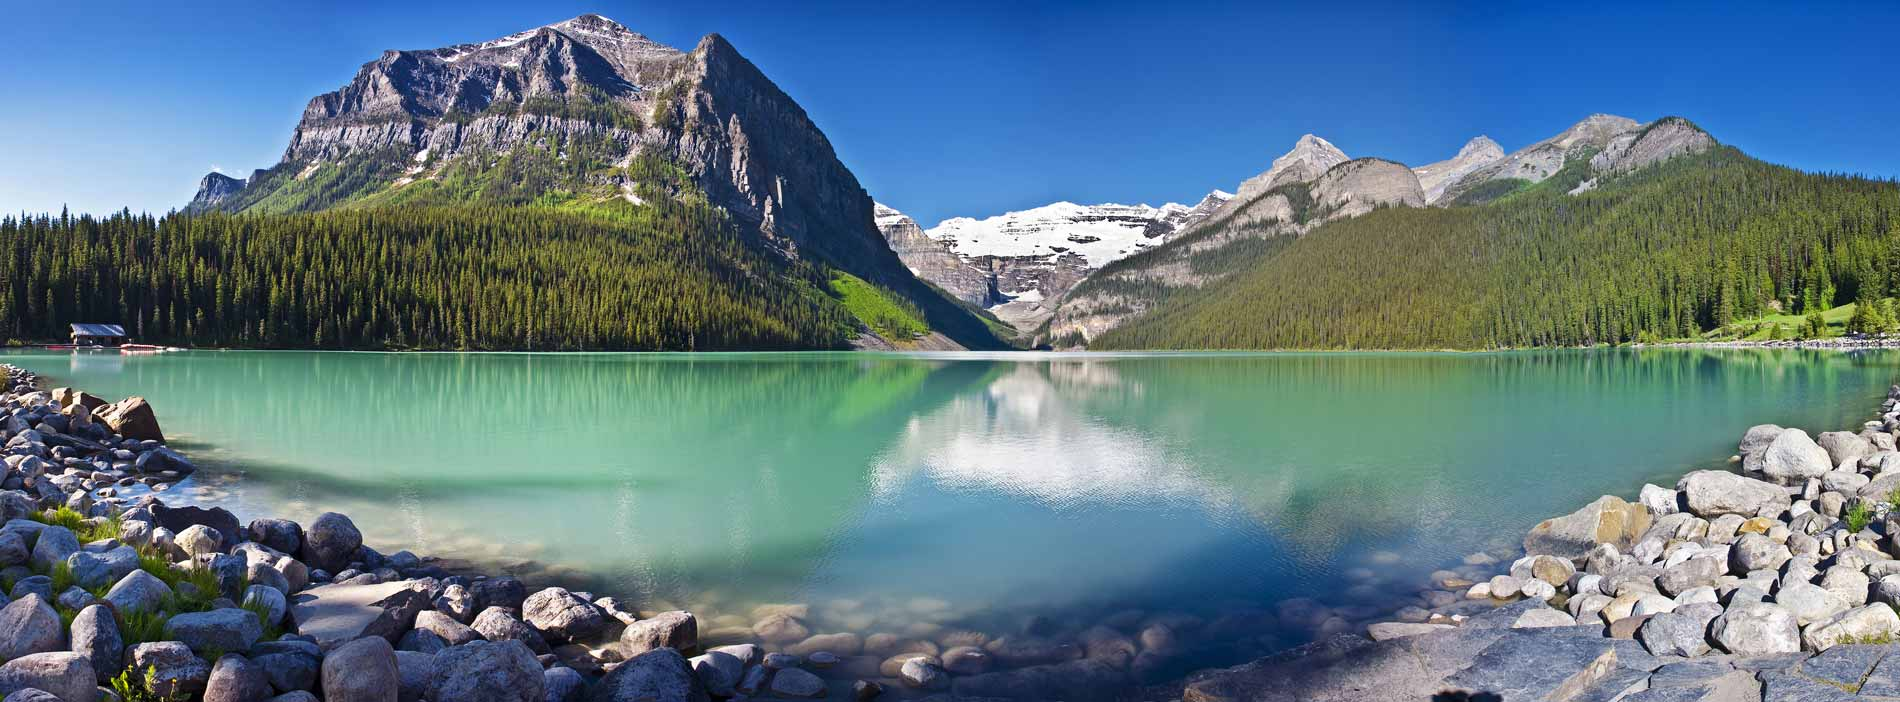 Banff National Park has beautiful scenery you need to see